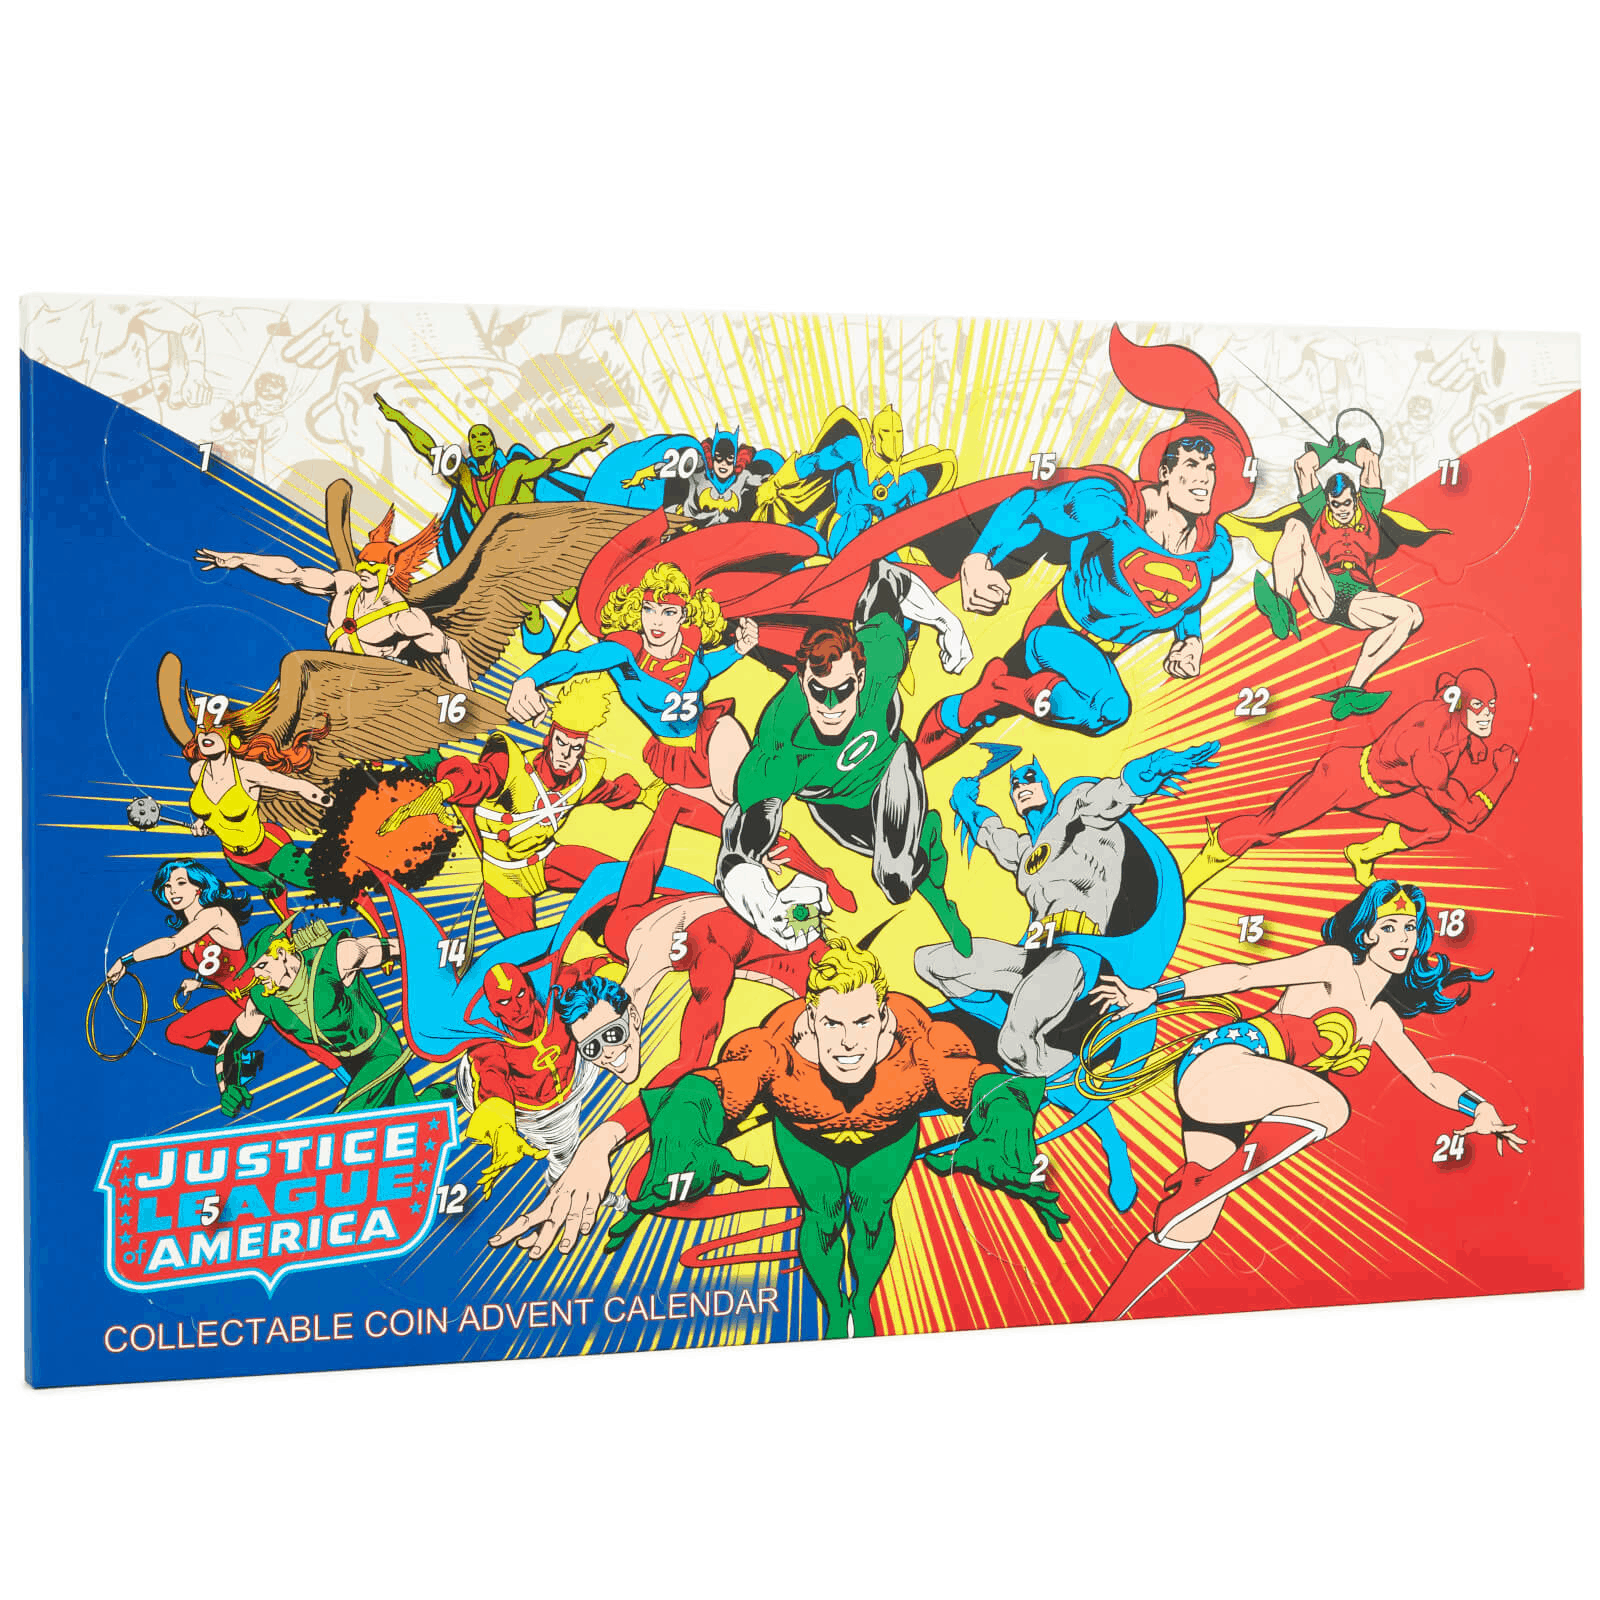 2019 DC Coin Advent Calendar Available Now For Preorder!